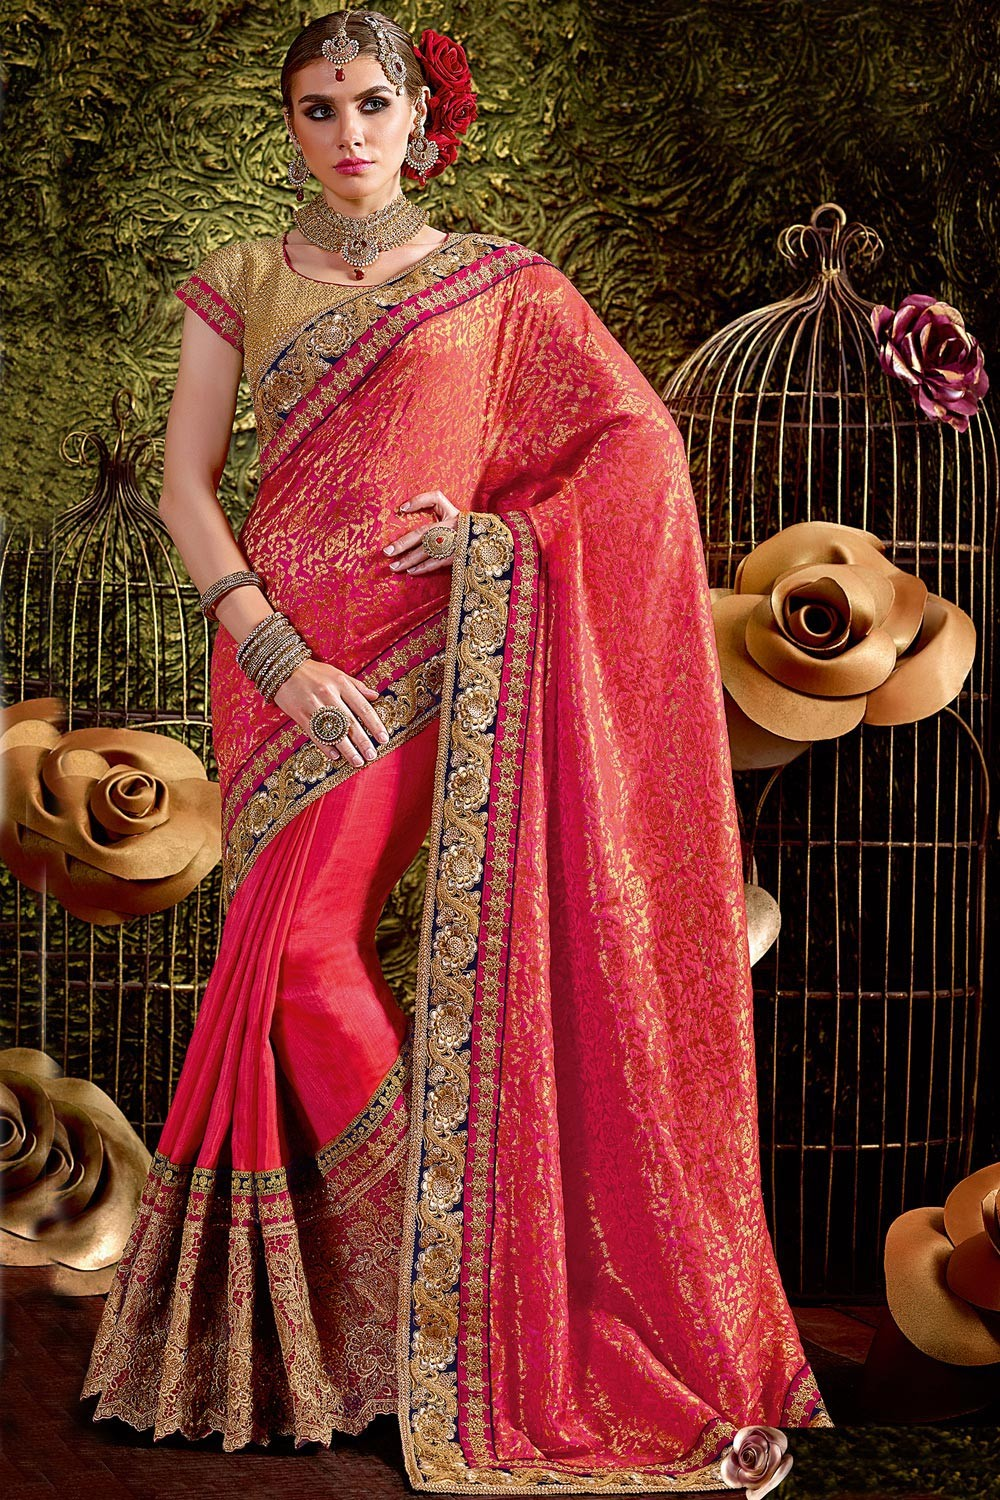 Paaneri Designer Red Color Floral Print Embroidery Border Bhagalpuri Silk & Art Silk Saree-Product Code-17119441104